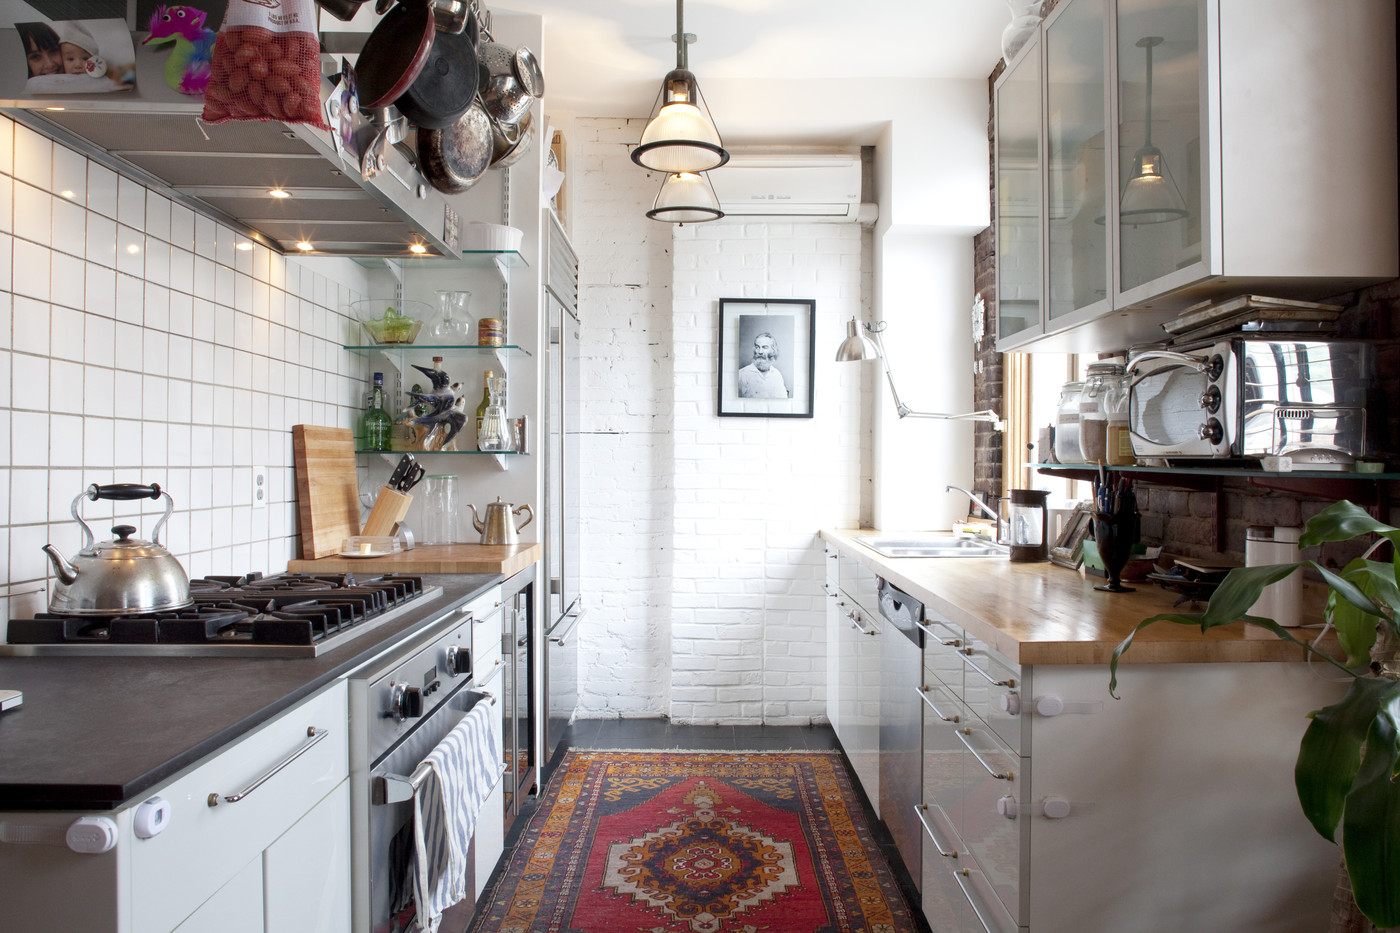 Jenna Gribbon Kitchen Photos, Design, Ideas, Remodel, And Decor   Lonny